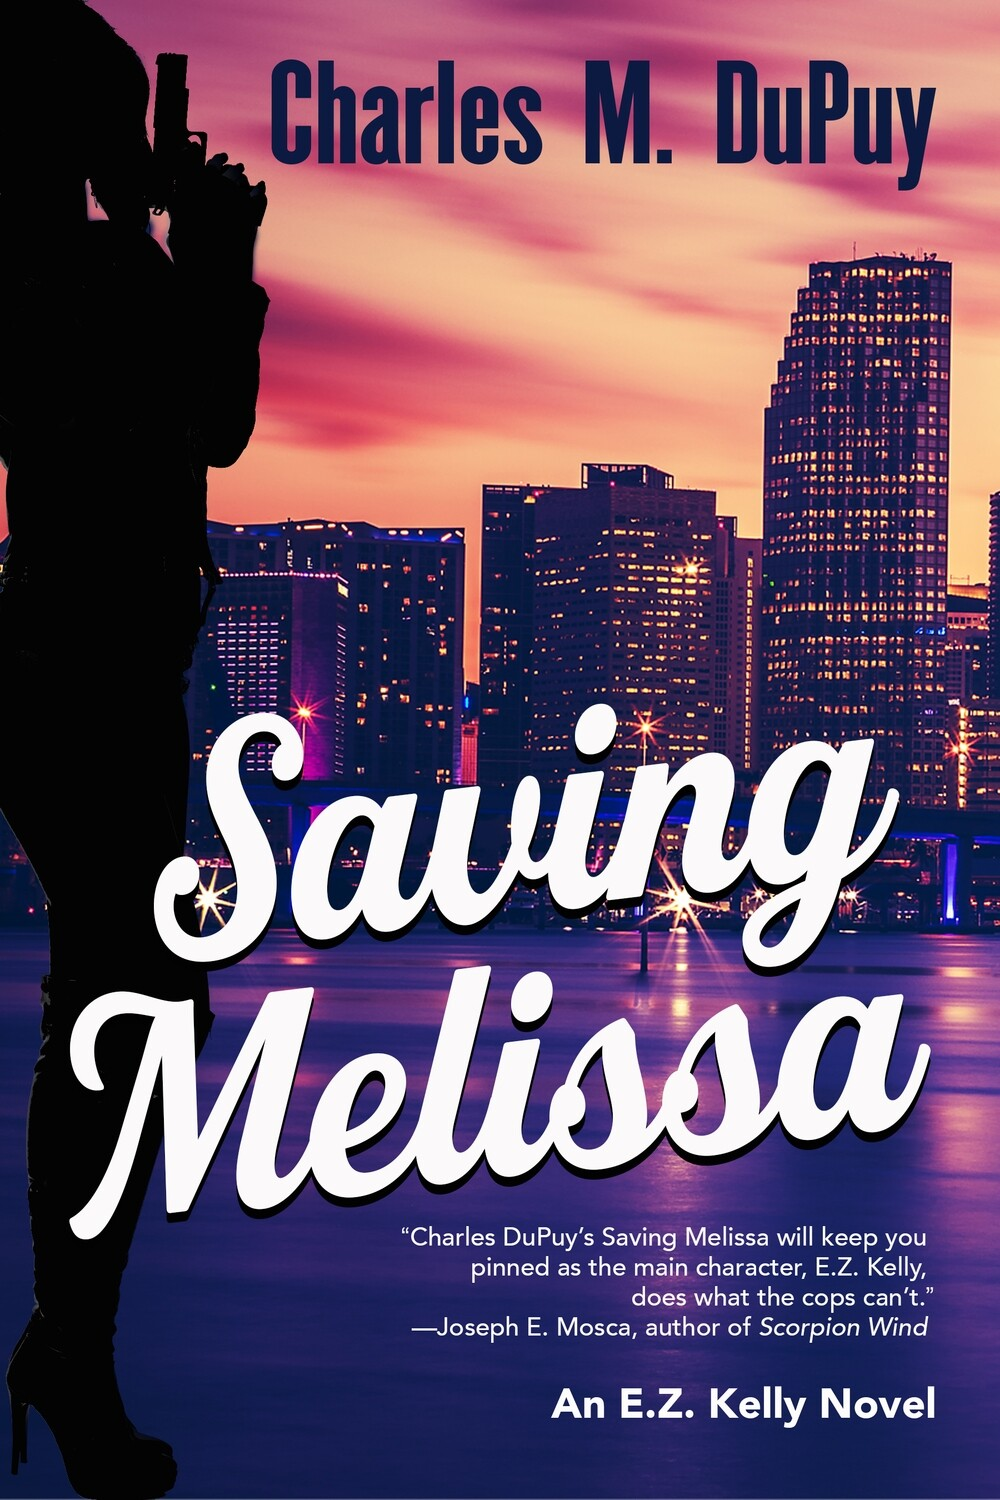 Saving Melissa by Charles M. DuPuy